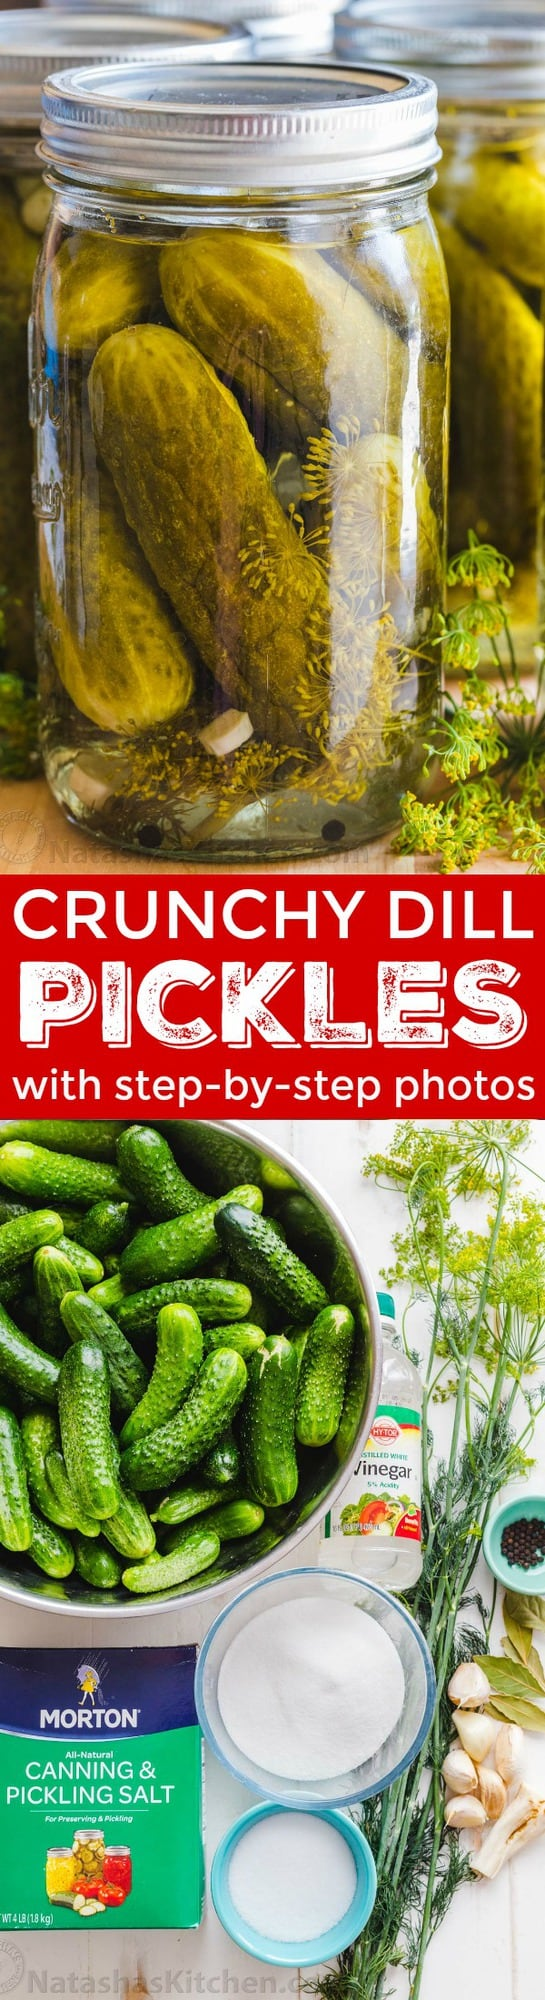 Our go-to Canned Dill Pickle Recipe with tips for making CRUNCHY dill pickles. We included an easy step-by-step photo tutorial on how to can pickles. | natashaskitchen.com